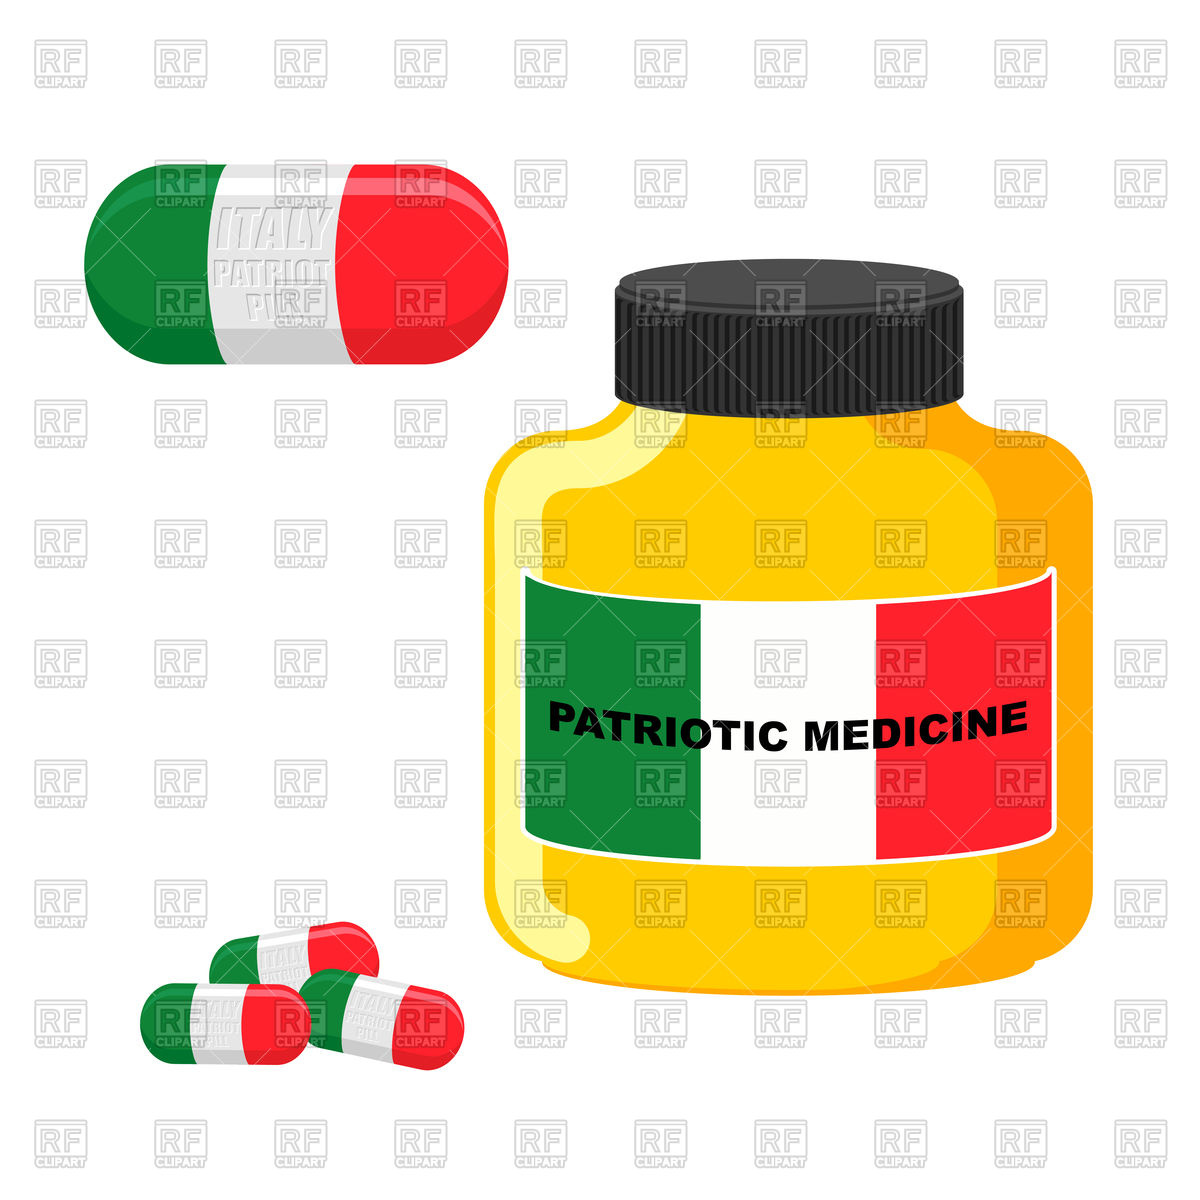 1200x1200 Patriotic Medicine Italy. Pills With Italian Flag. Royalty Free